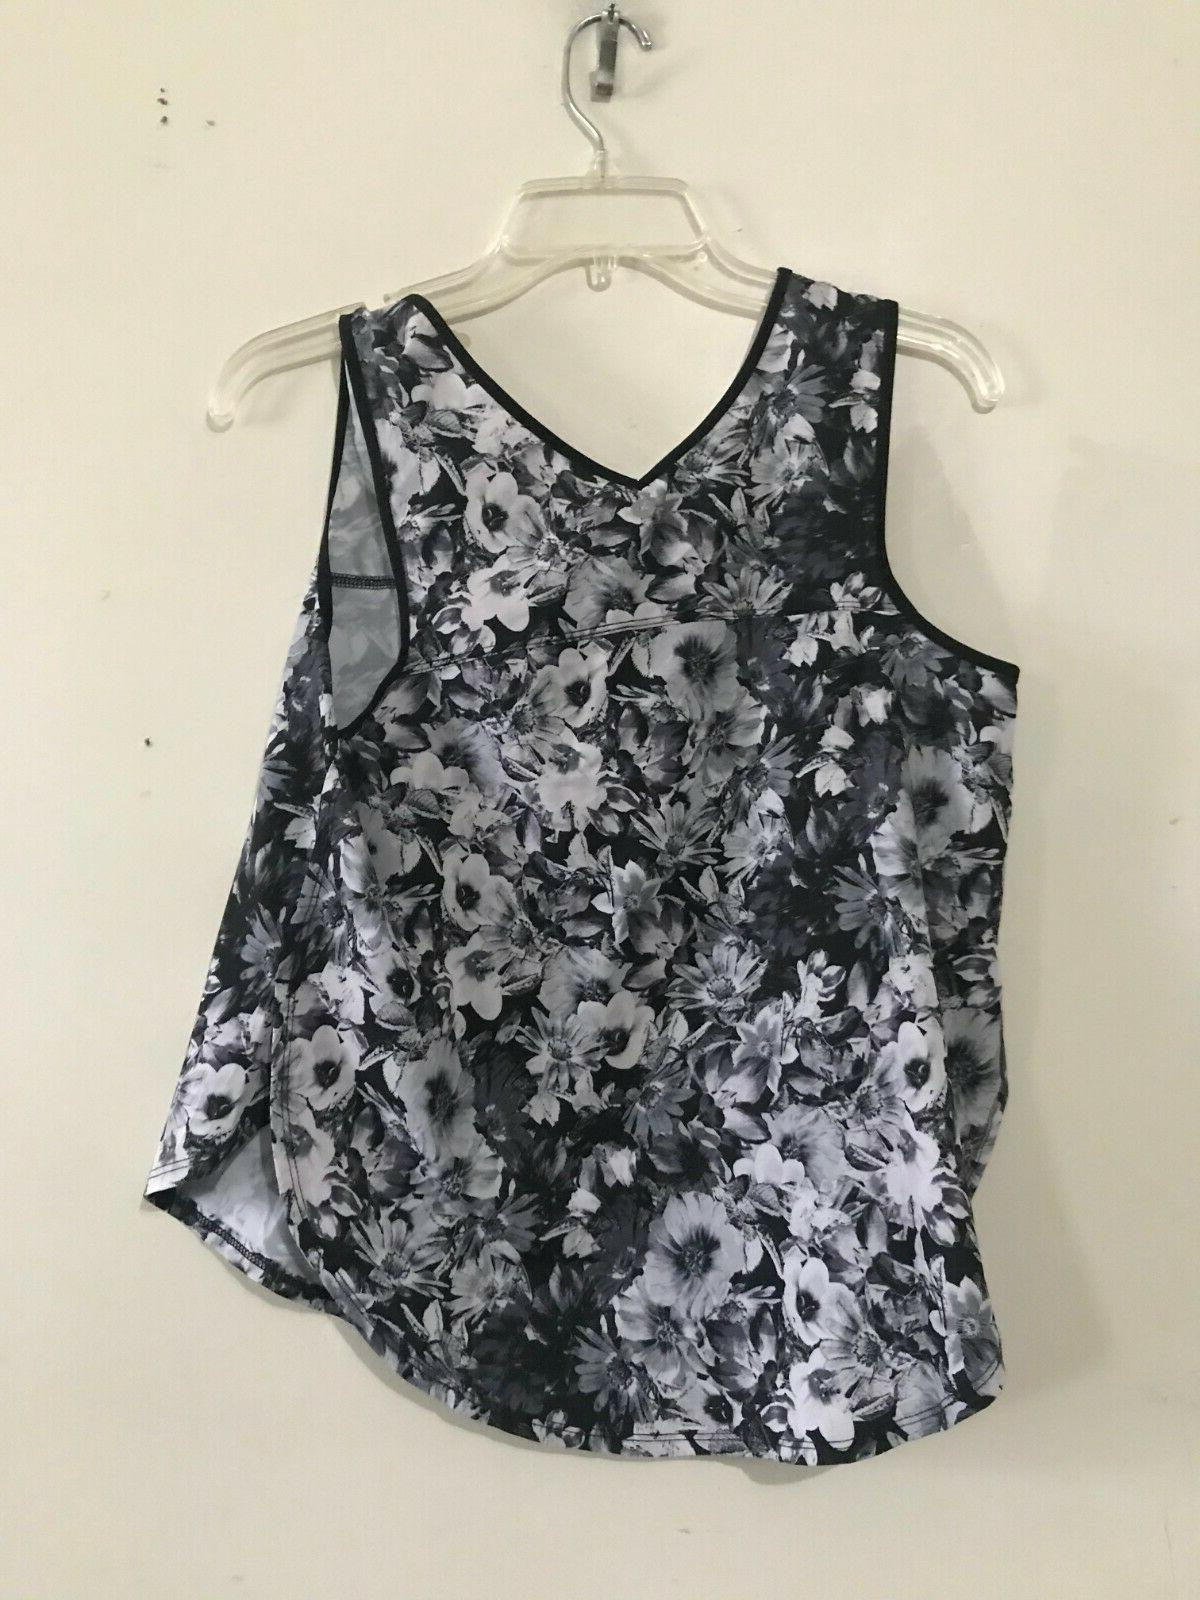 90 Size M Floral Athletic Apparel Top RN#144527